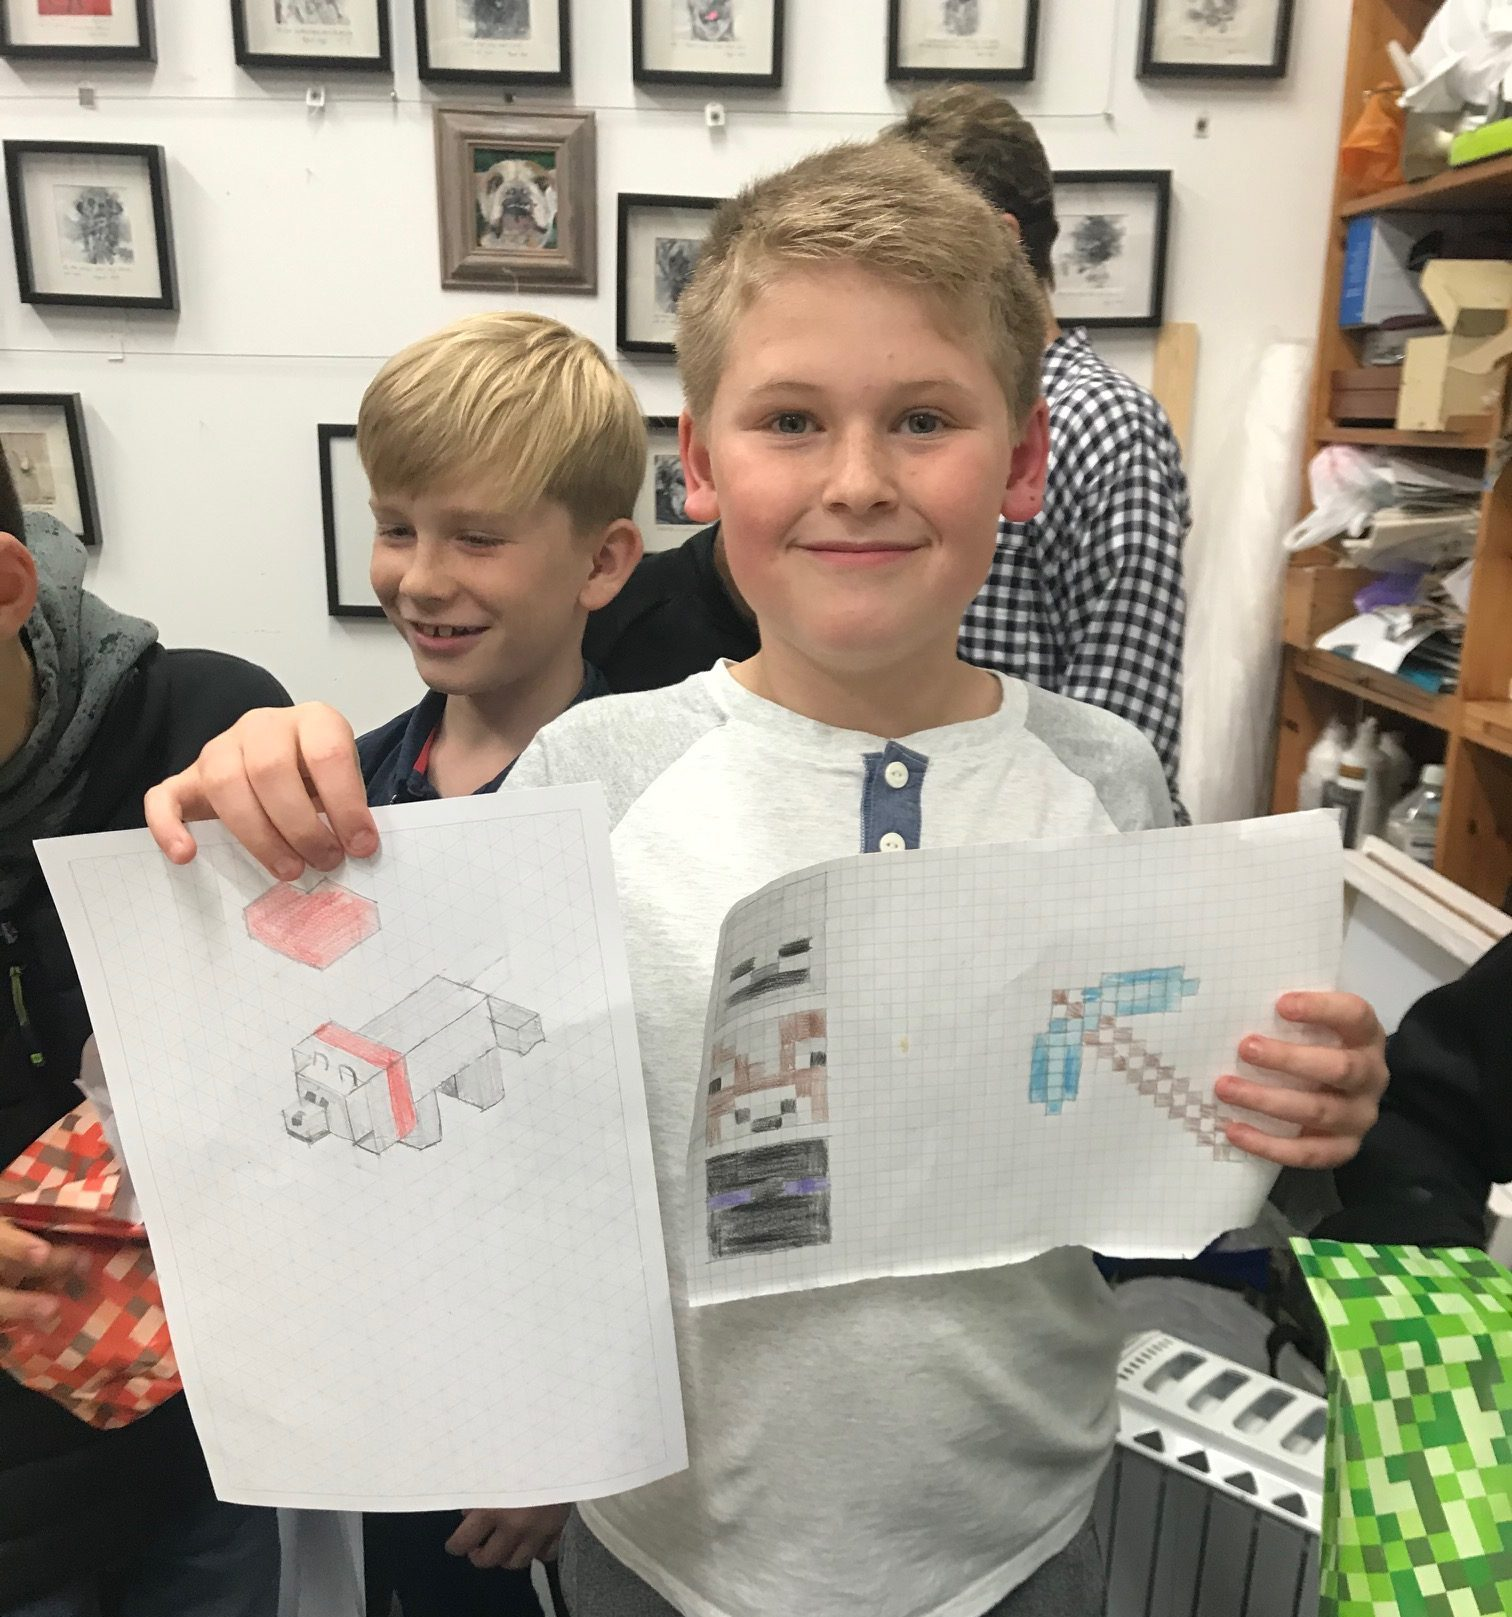 A boy showing his Minecraft drawings